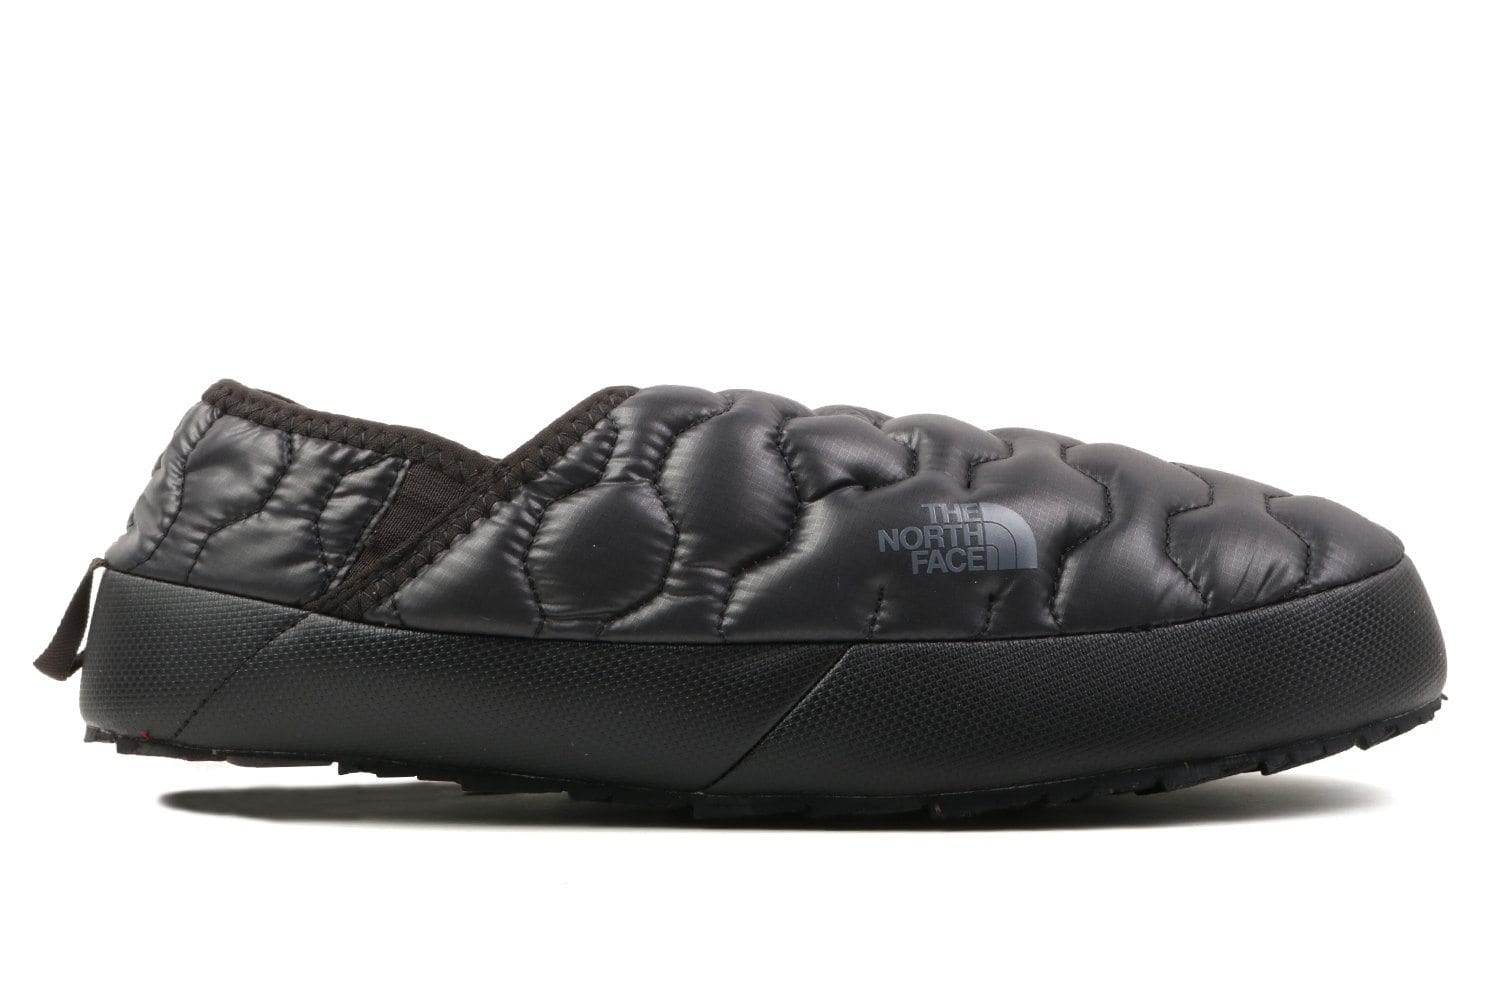 b50f5be26bf MENS THERMOBALL TRACTION MULE IV MENS FOOTWEAR THE NORTH FACE  SHINYTNFBLACK DRKSHDWGRY 10